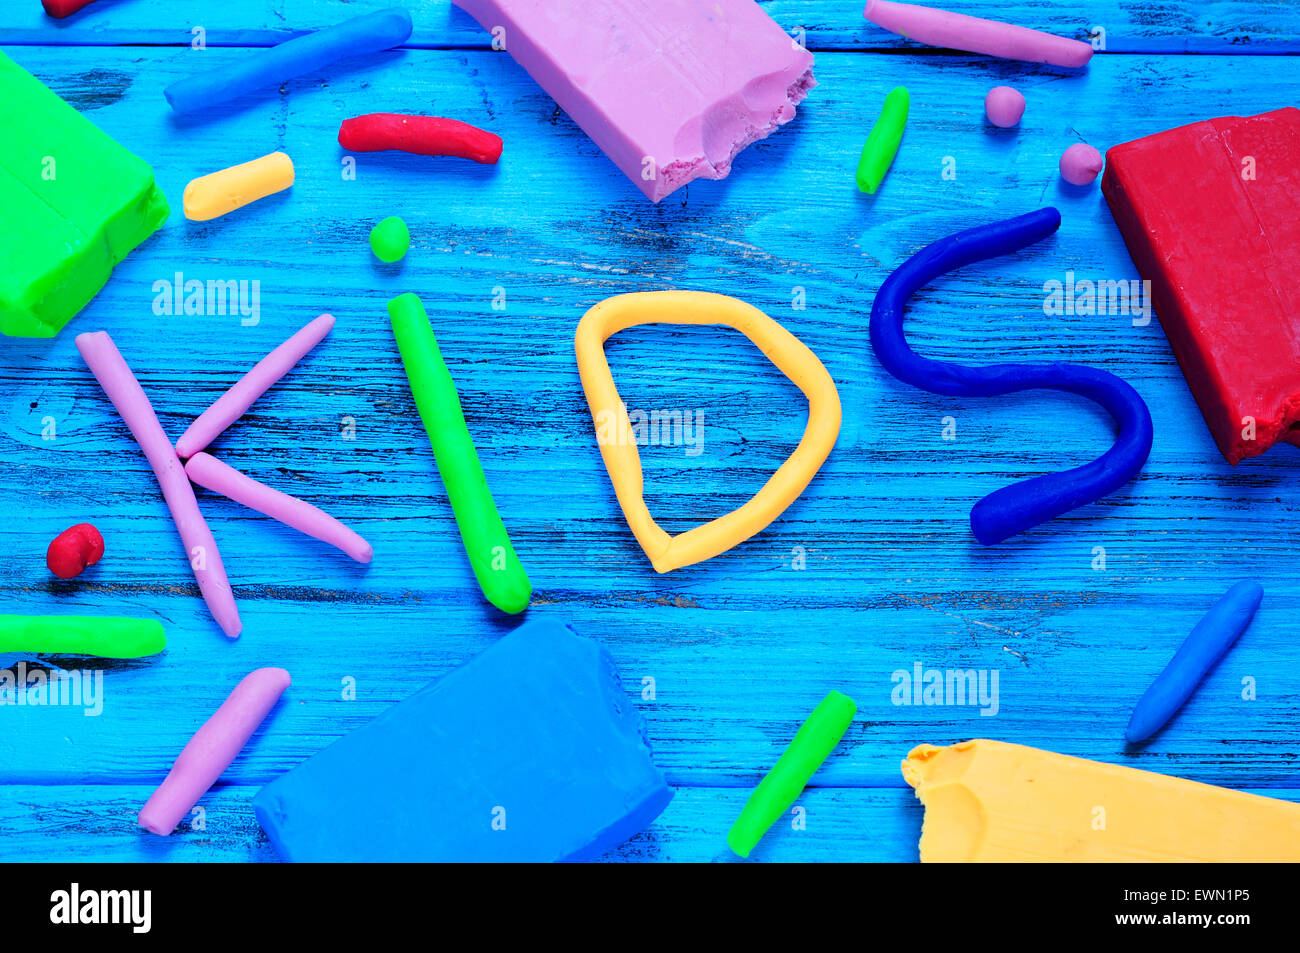 modelling clay of different colors forming the word kids on a blue wooden surface - Stock Image